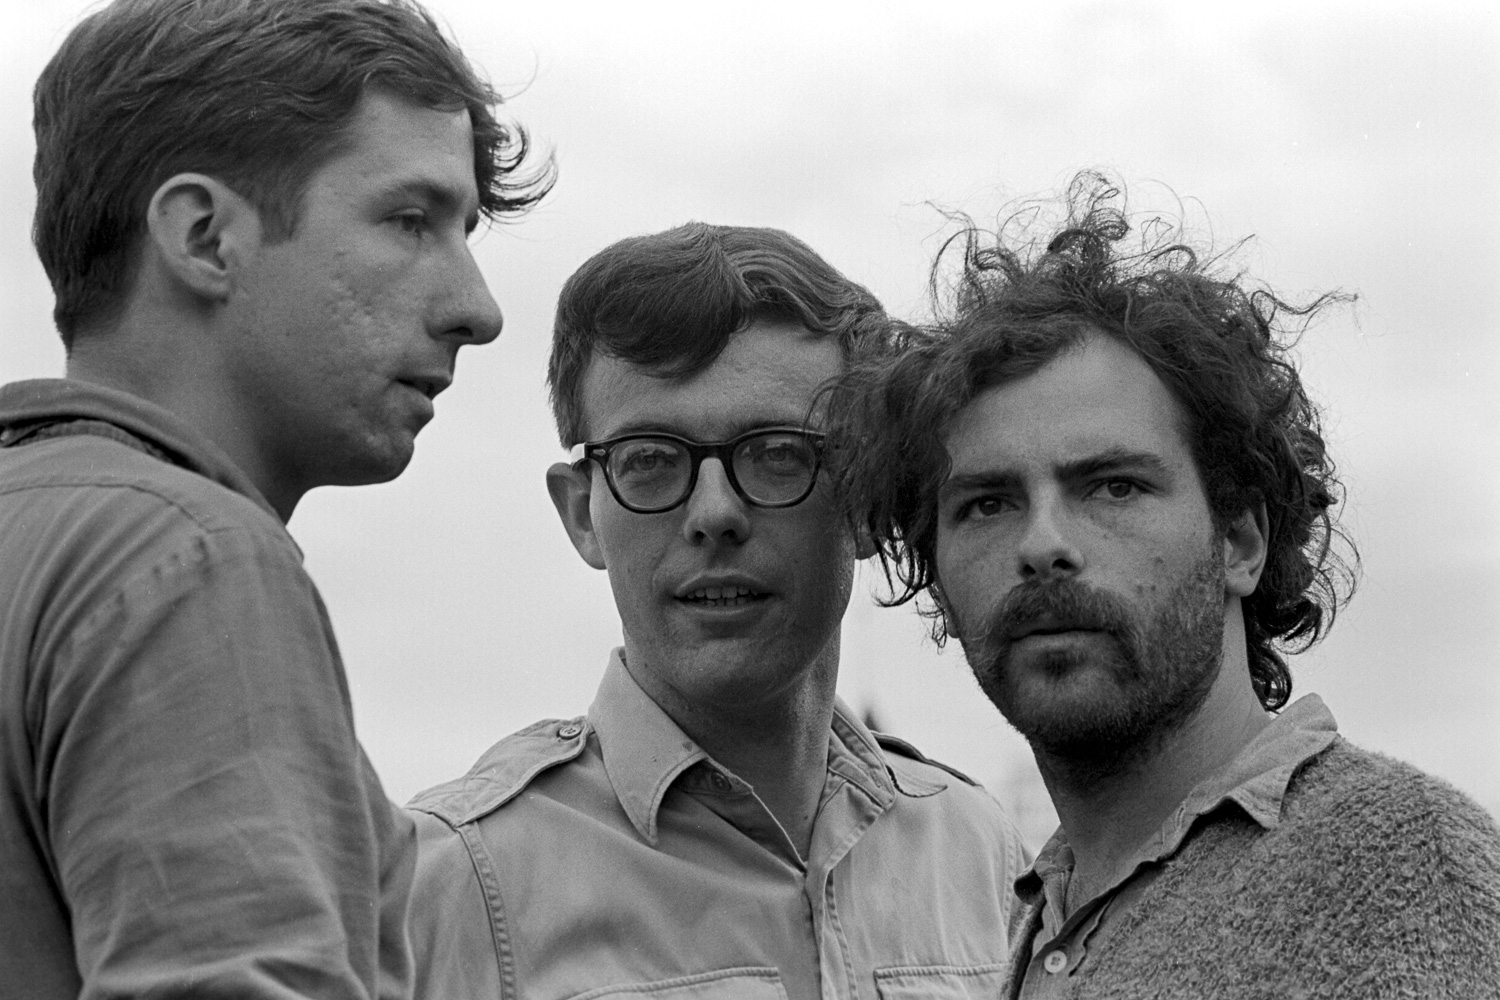 Tom Hayden (left), Rennie Davis (center) and Jerry Rubin (right) put their heads together in the open air at Lincoln Park.